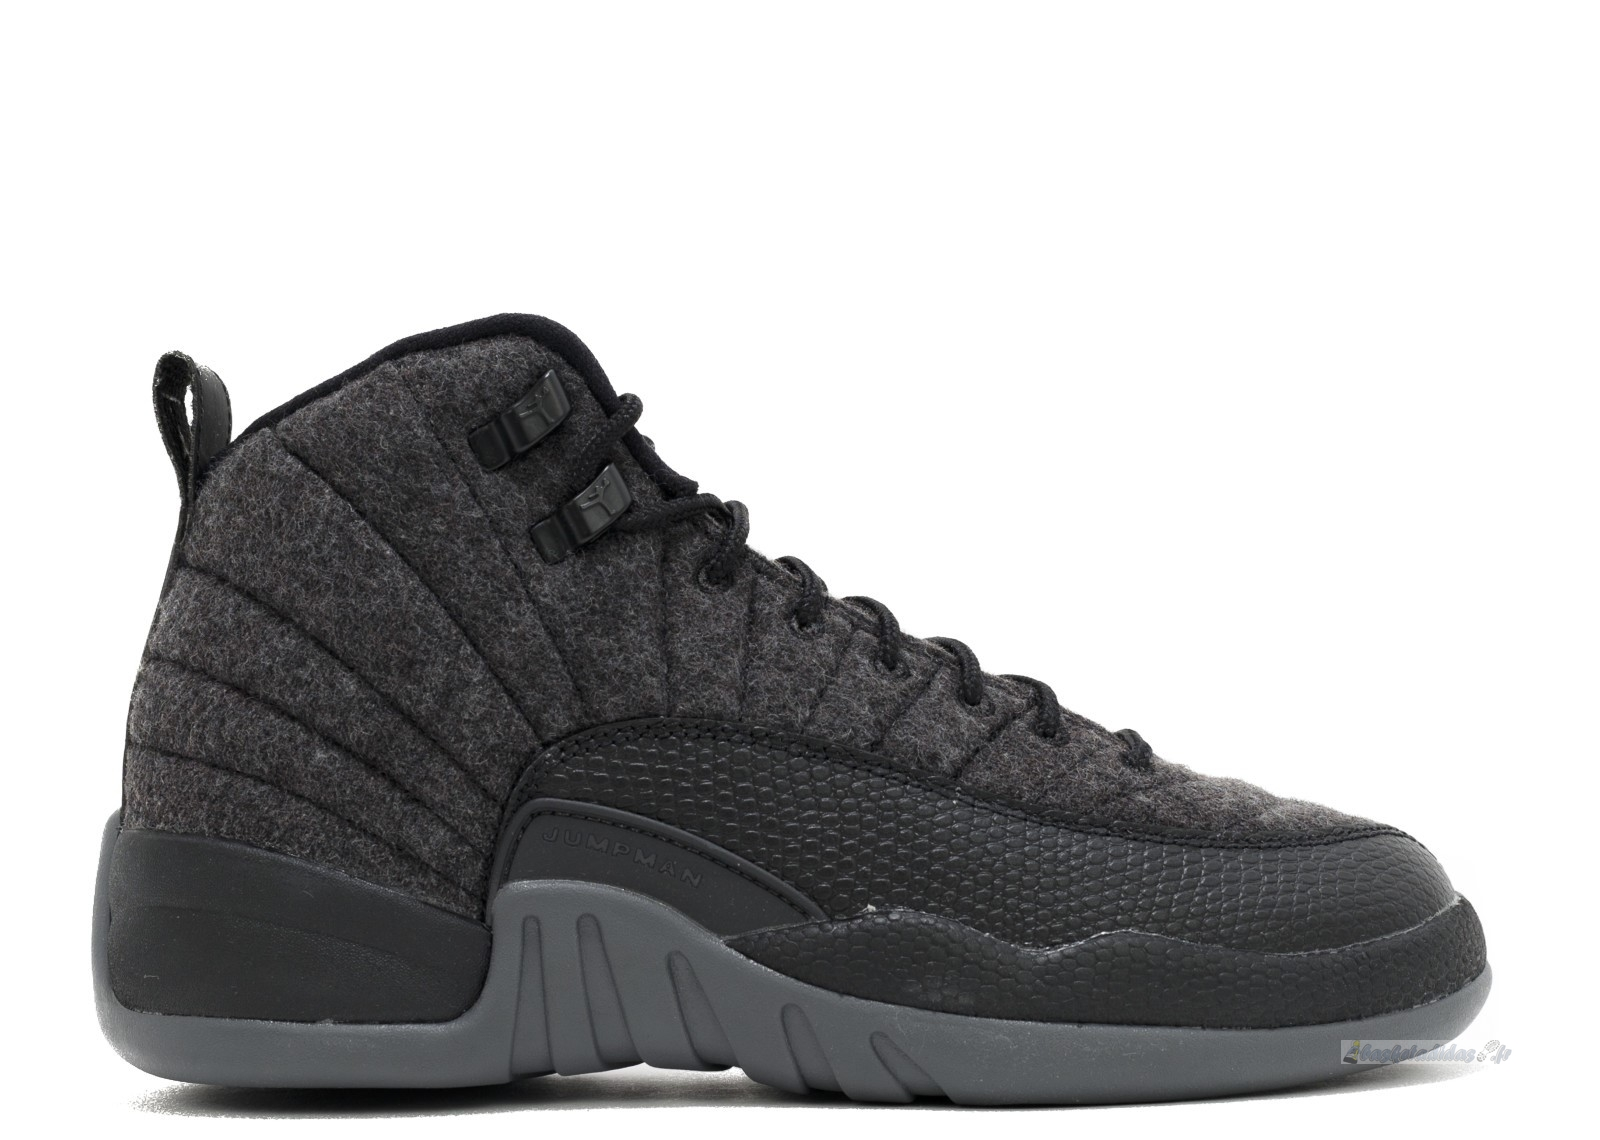 Chaussure de Basket Air Jordan 12 Retro Wool (Gs) Gris (852626-003)